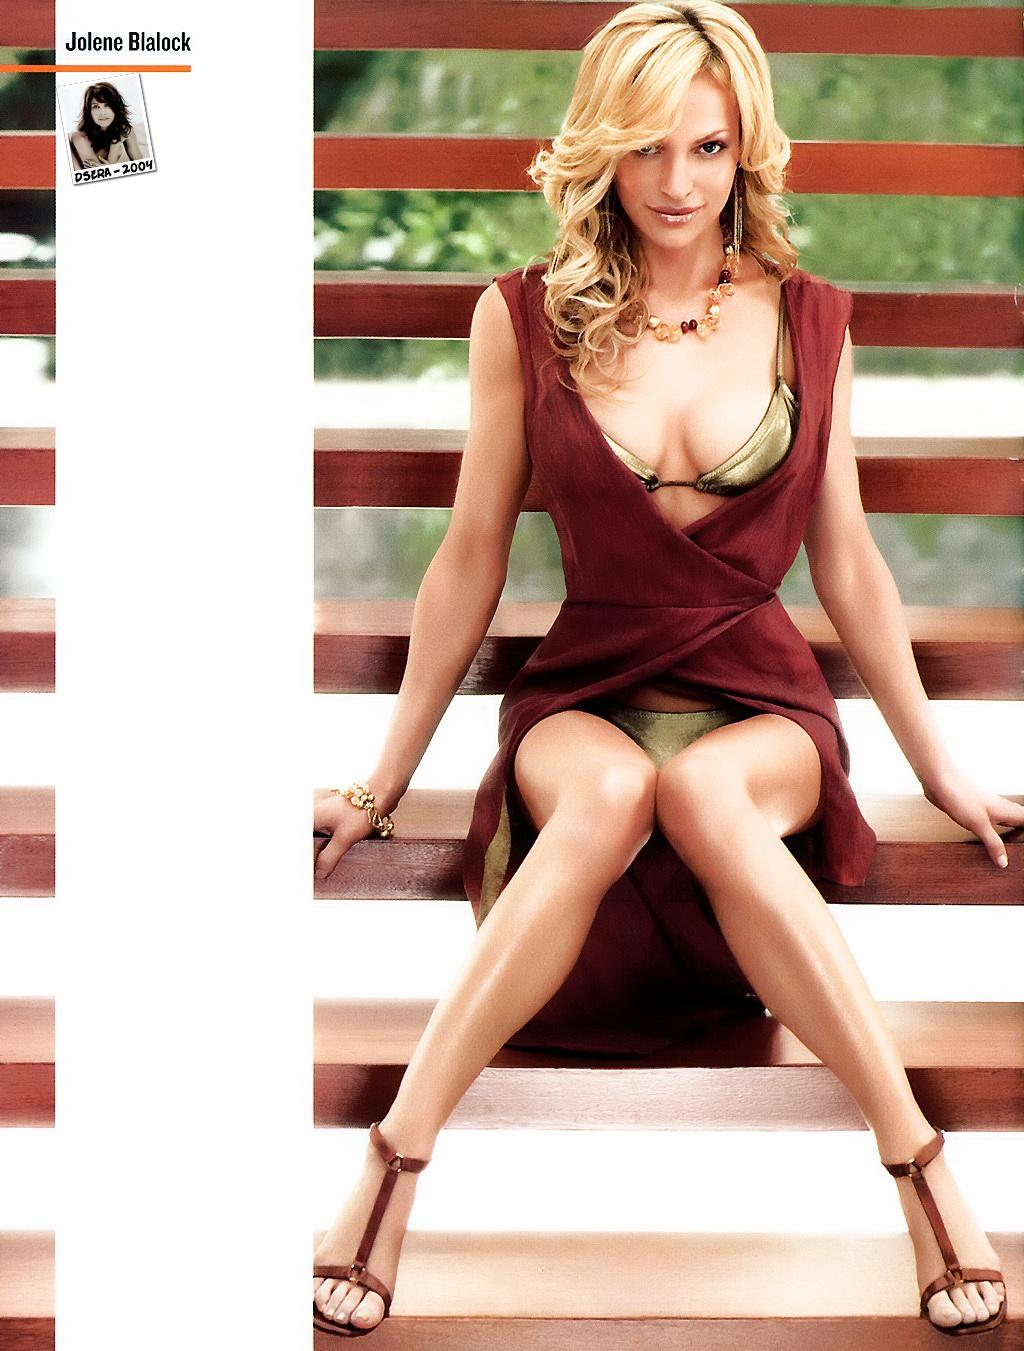 Jolene blalock hot cleavage